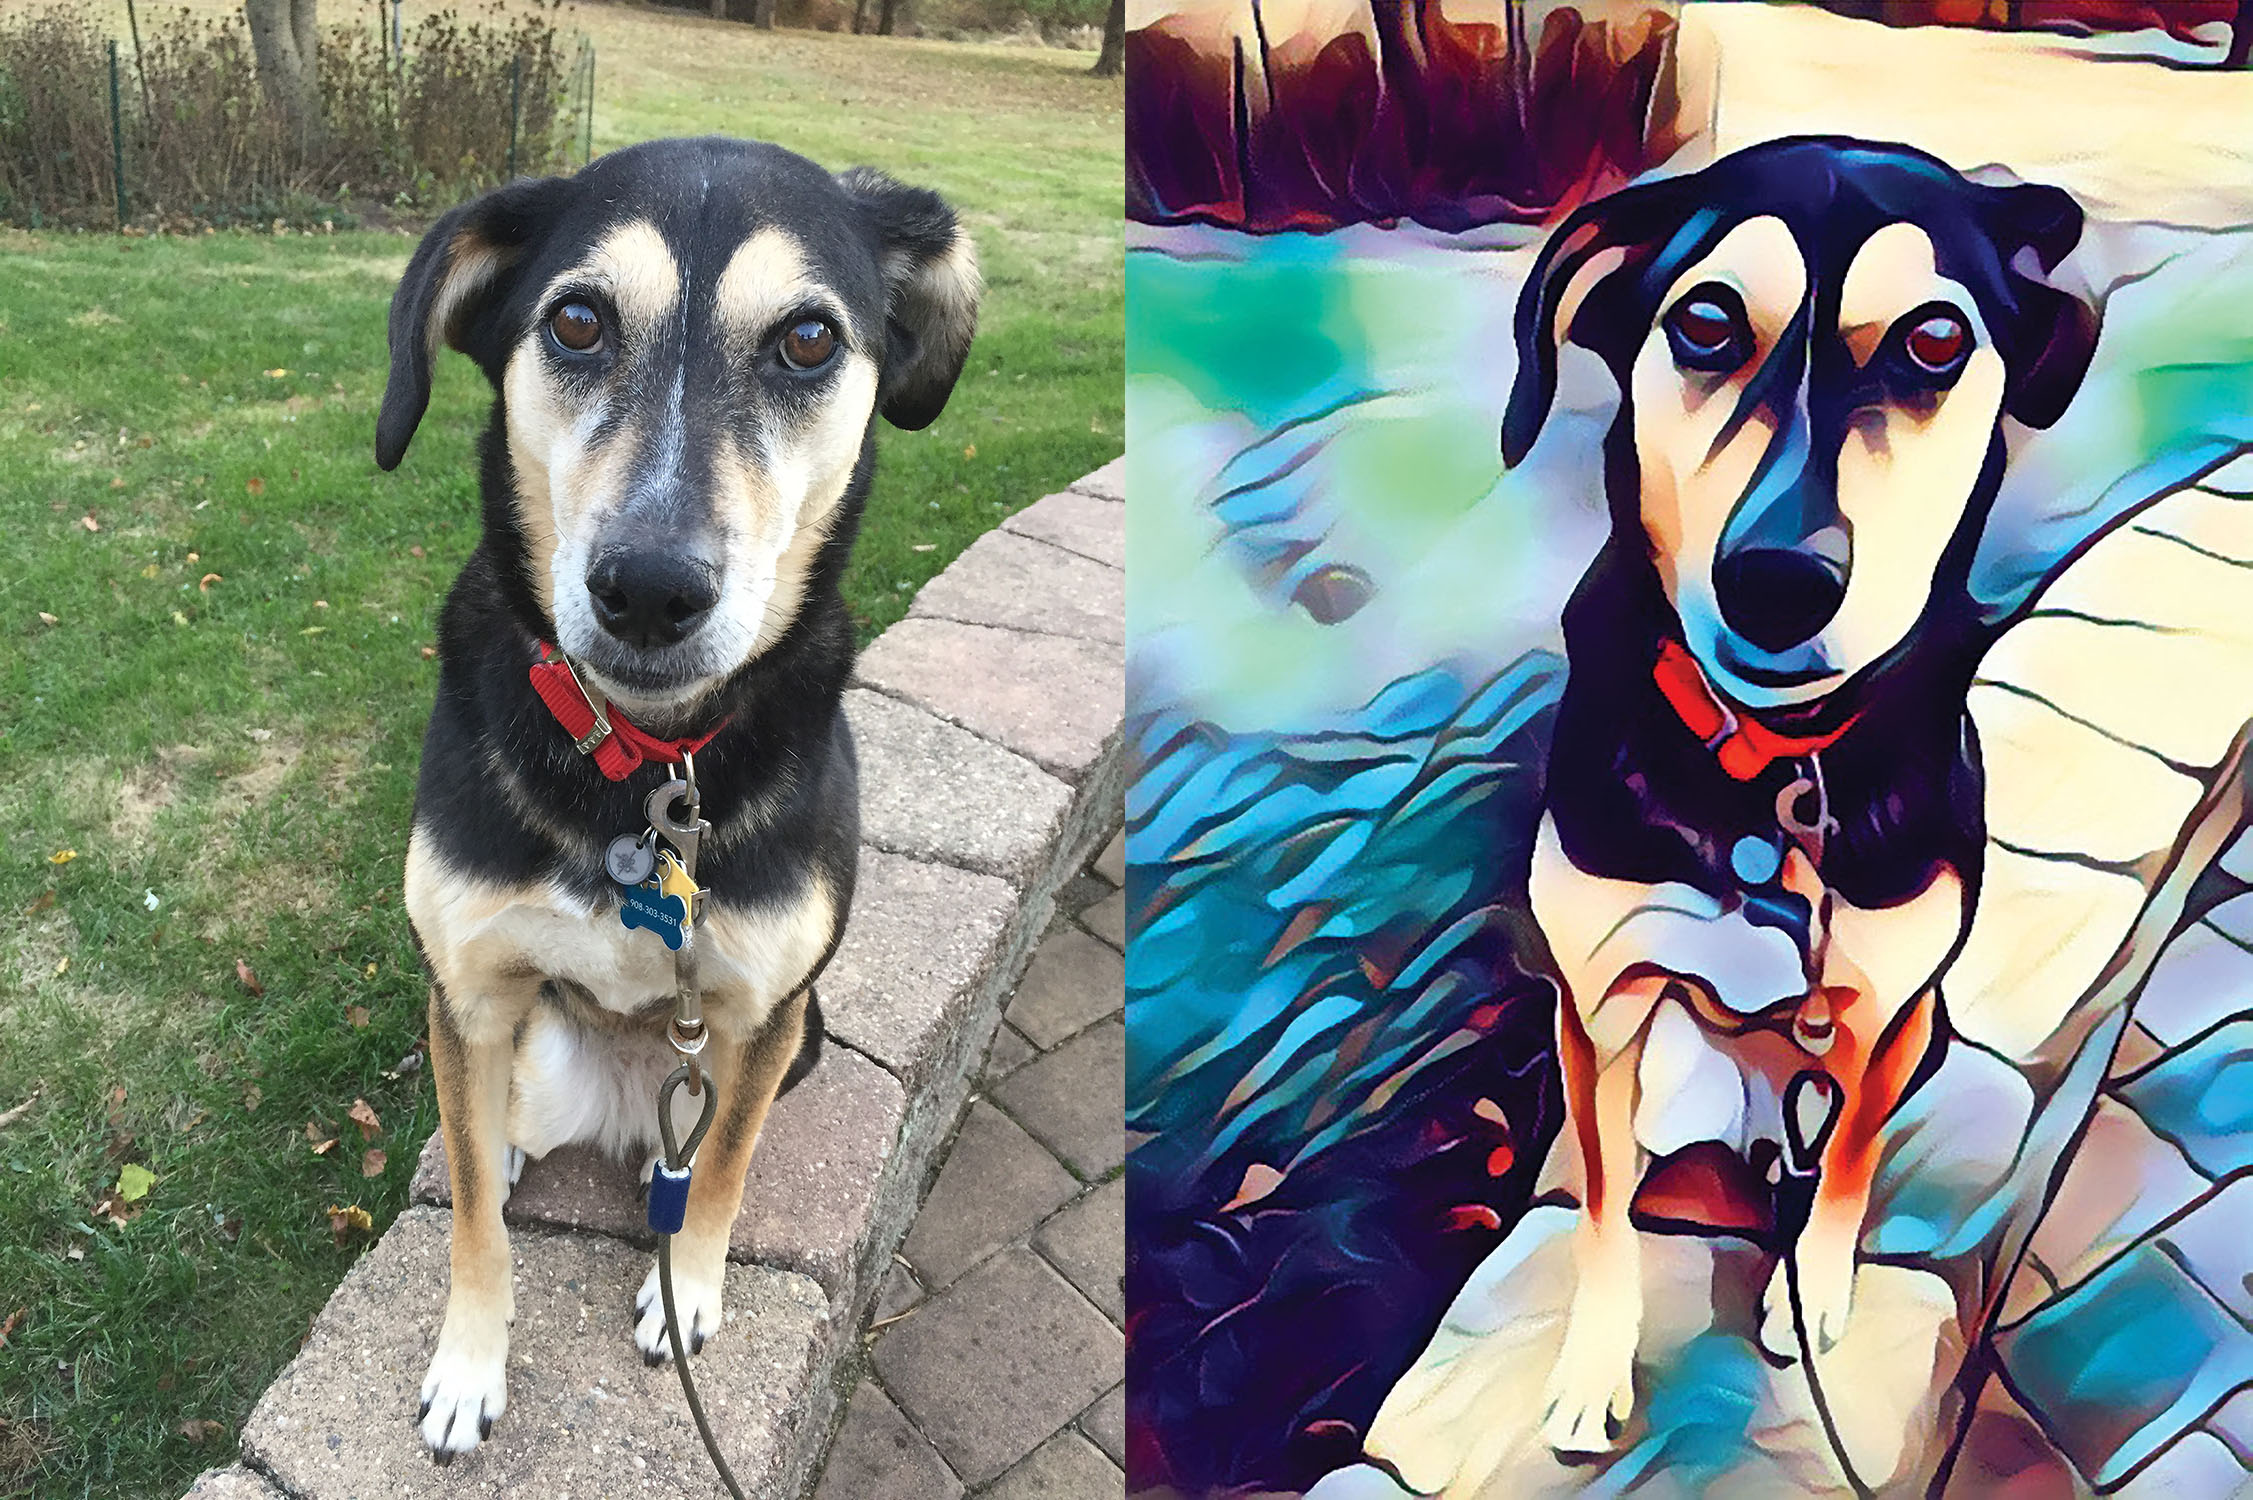 Before and after stylized image of a dog standing on a patio wall